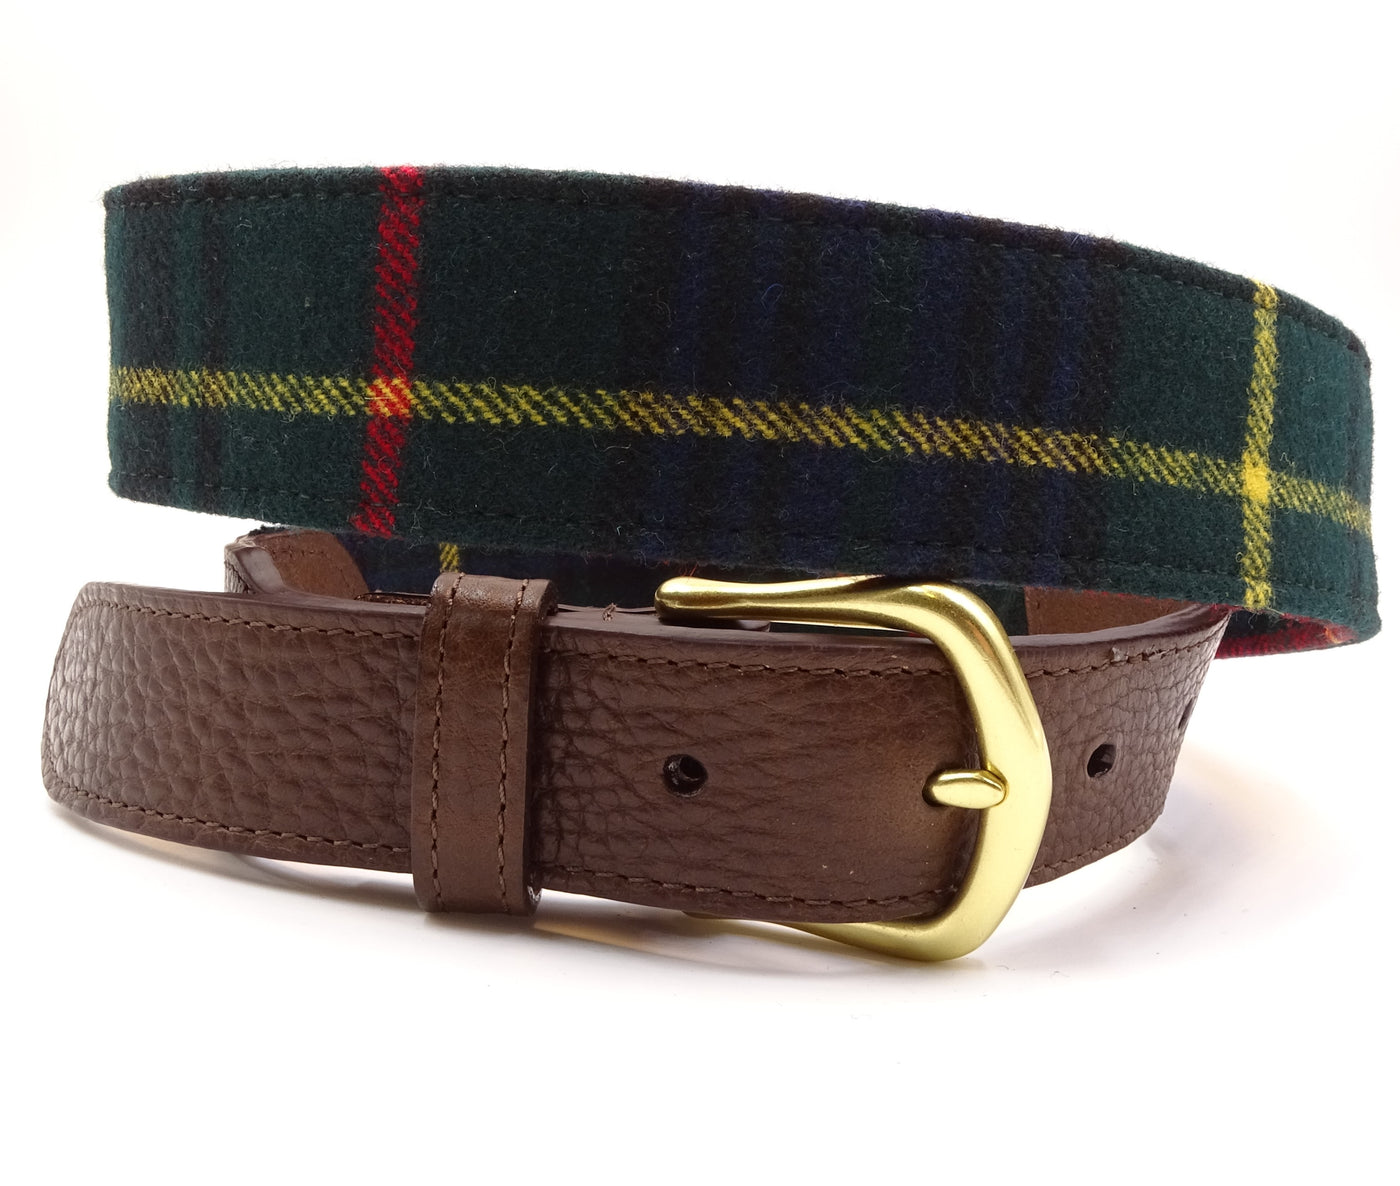 Edinburgh Green & Yellow Wool Leather Tab Belt - FH Wadsworth